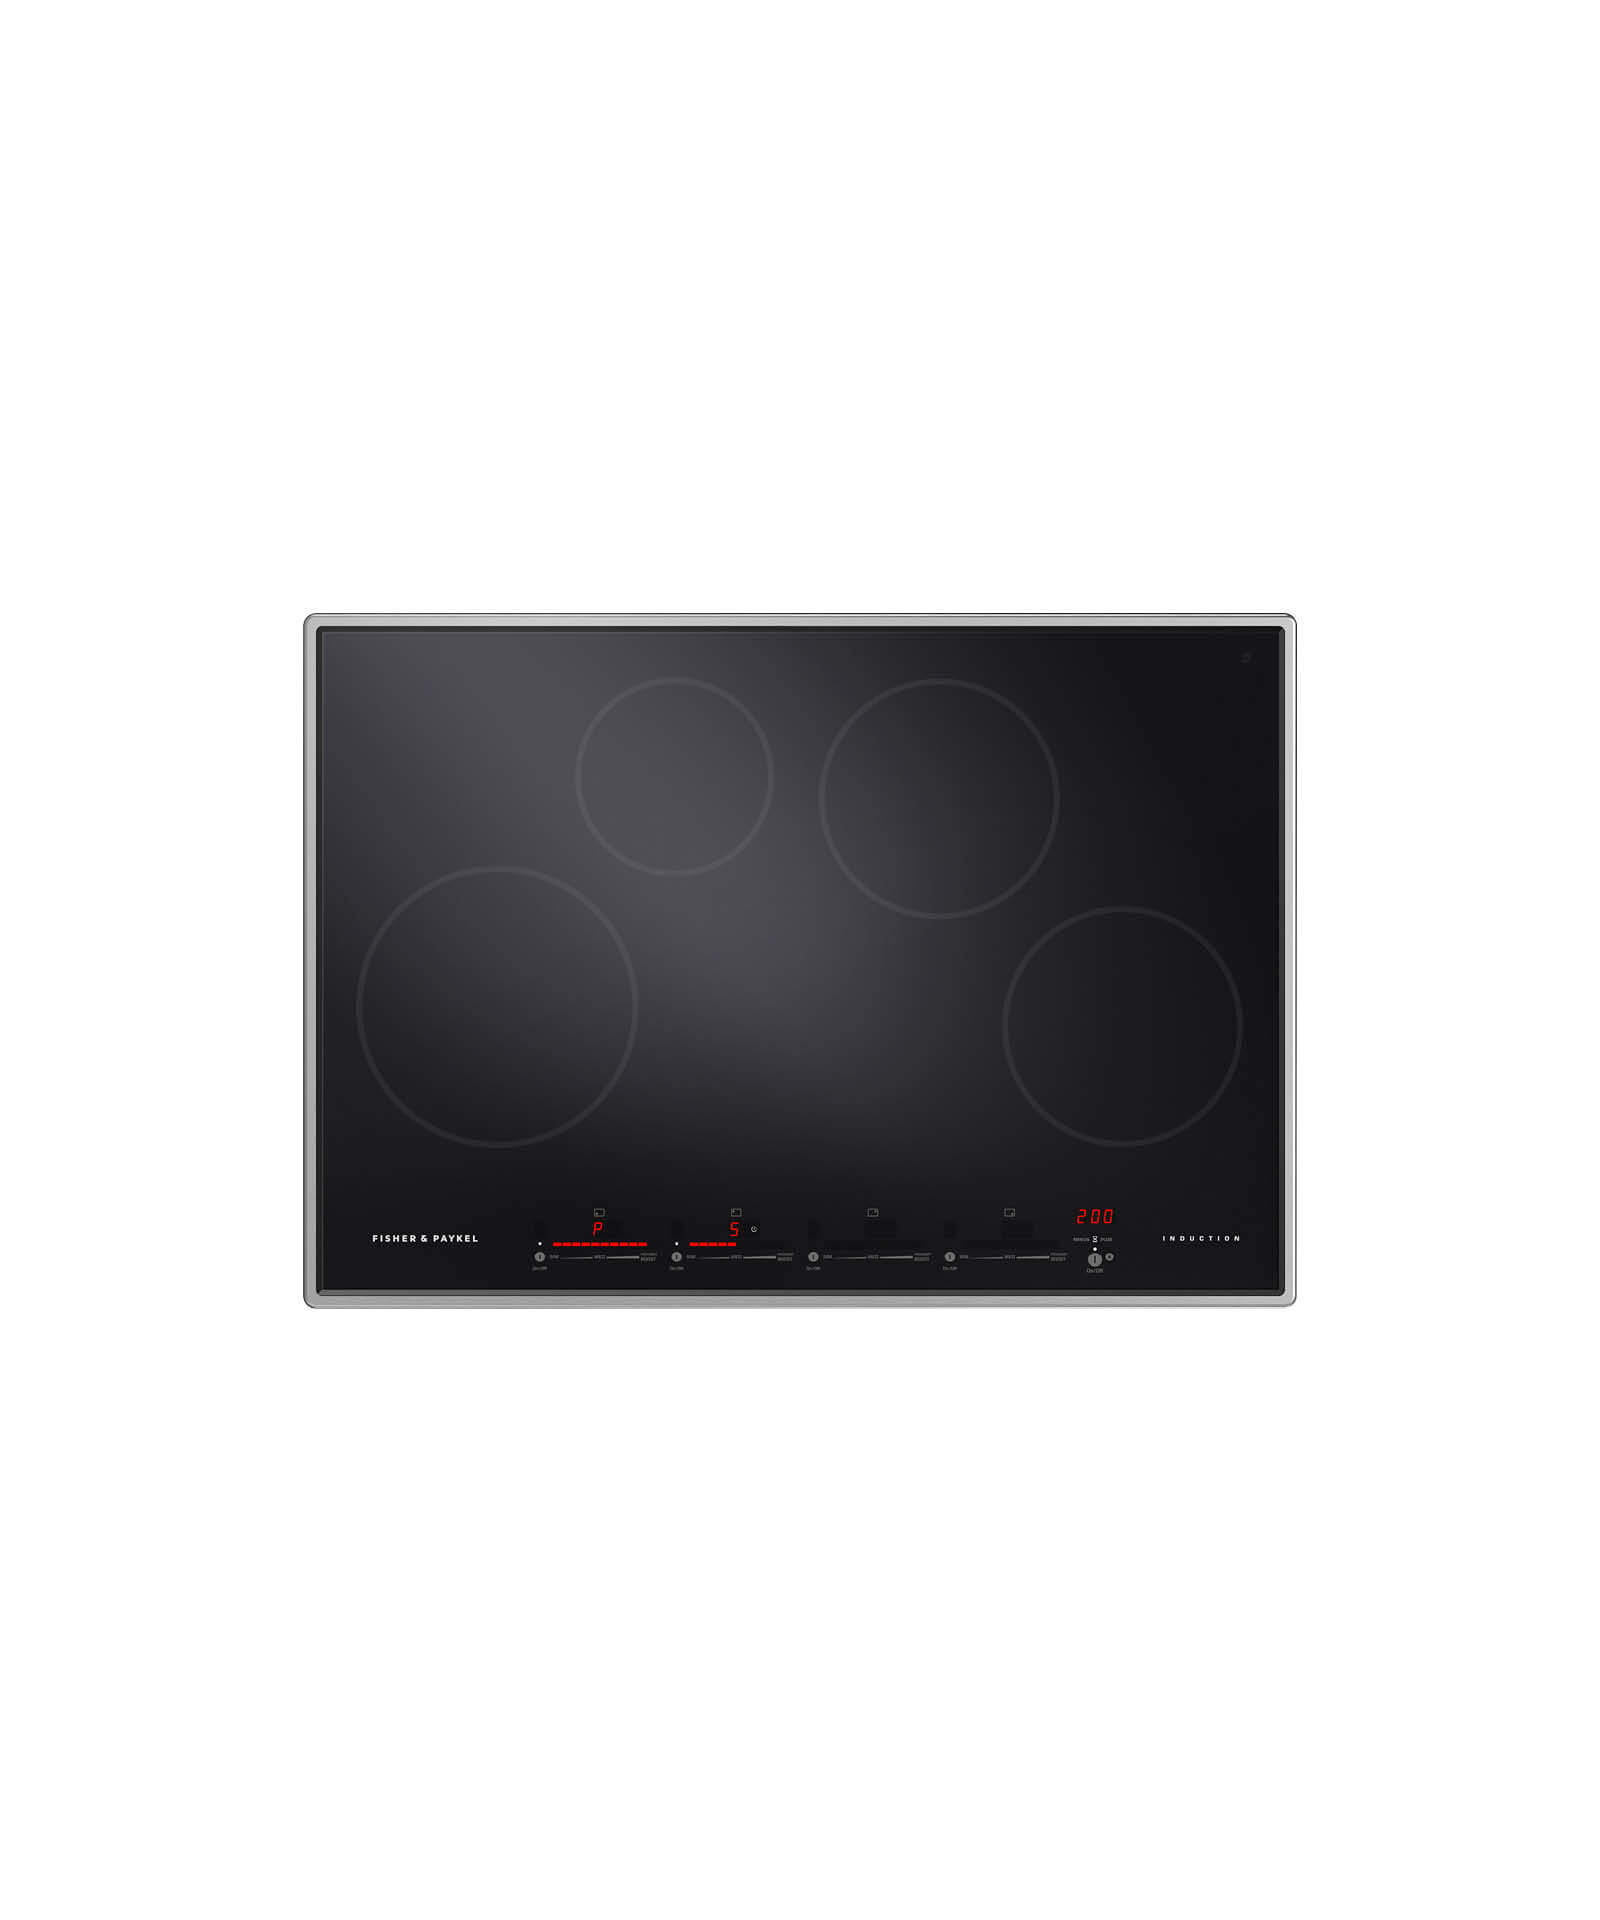 "Fisher and Paykel Induction Cooktop 30"" 4 Zone"